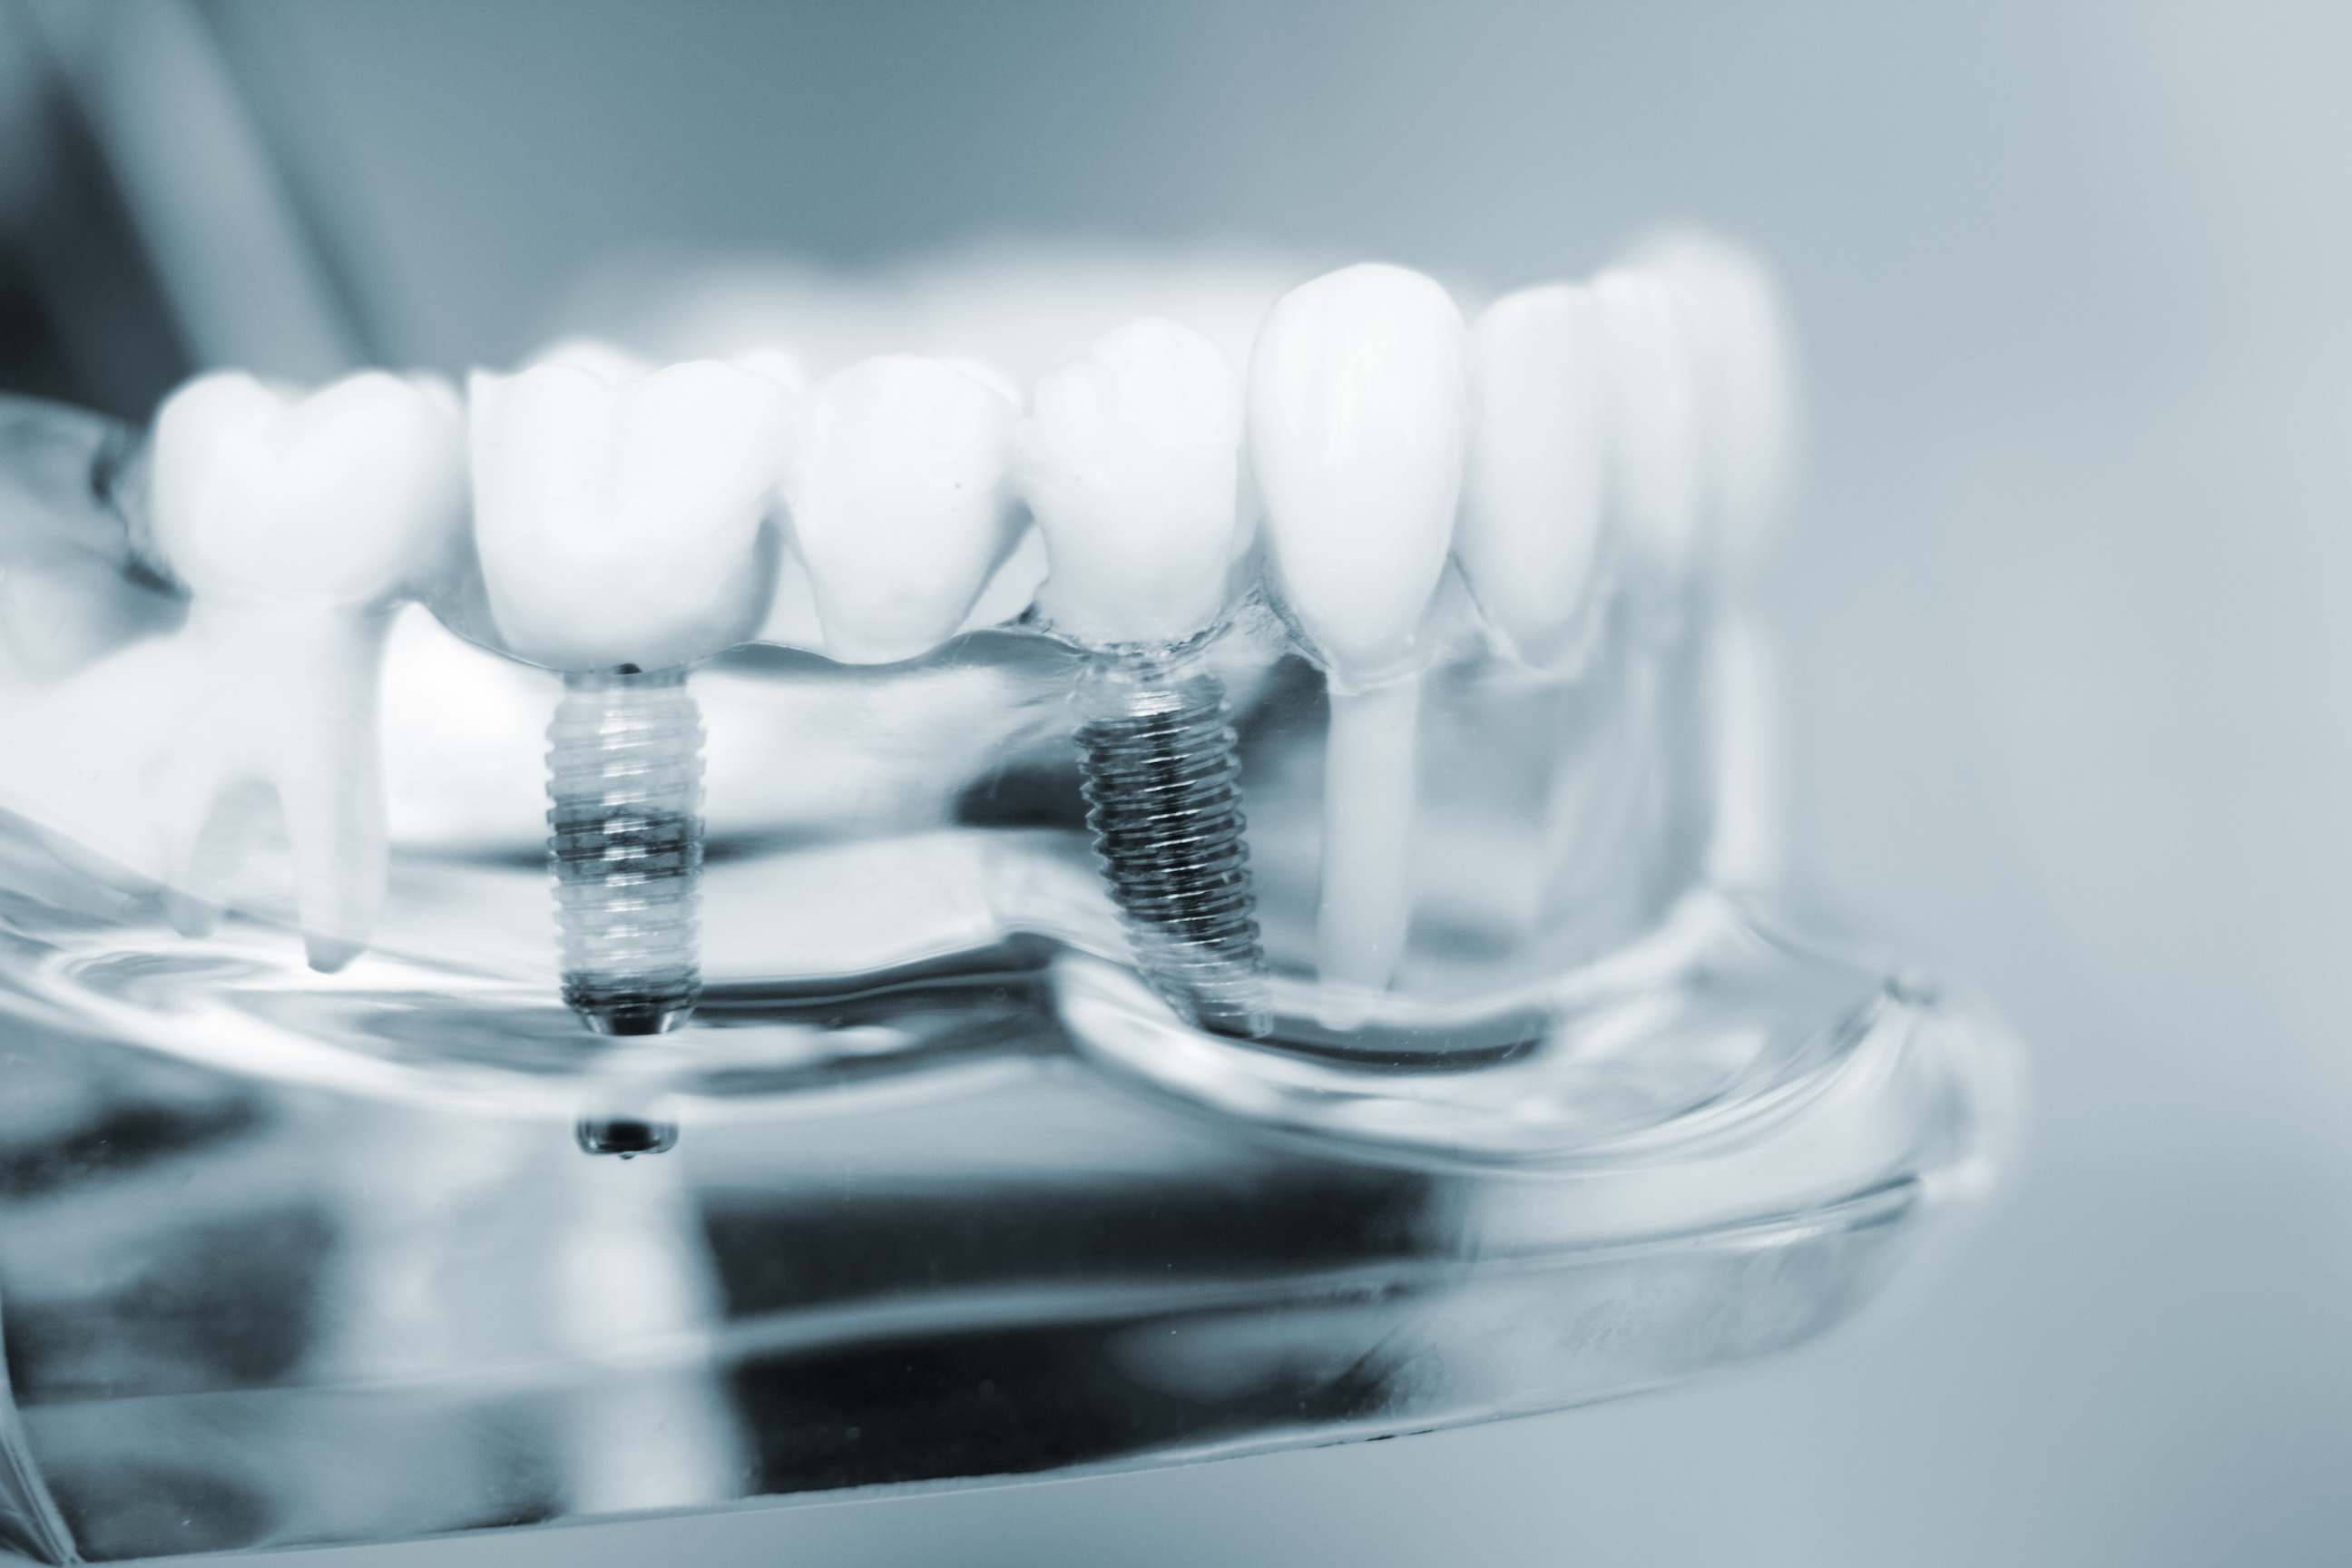 close-up of dental implant